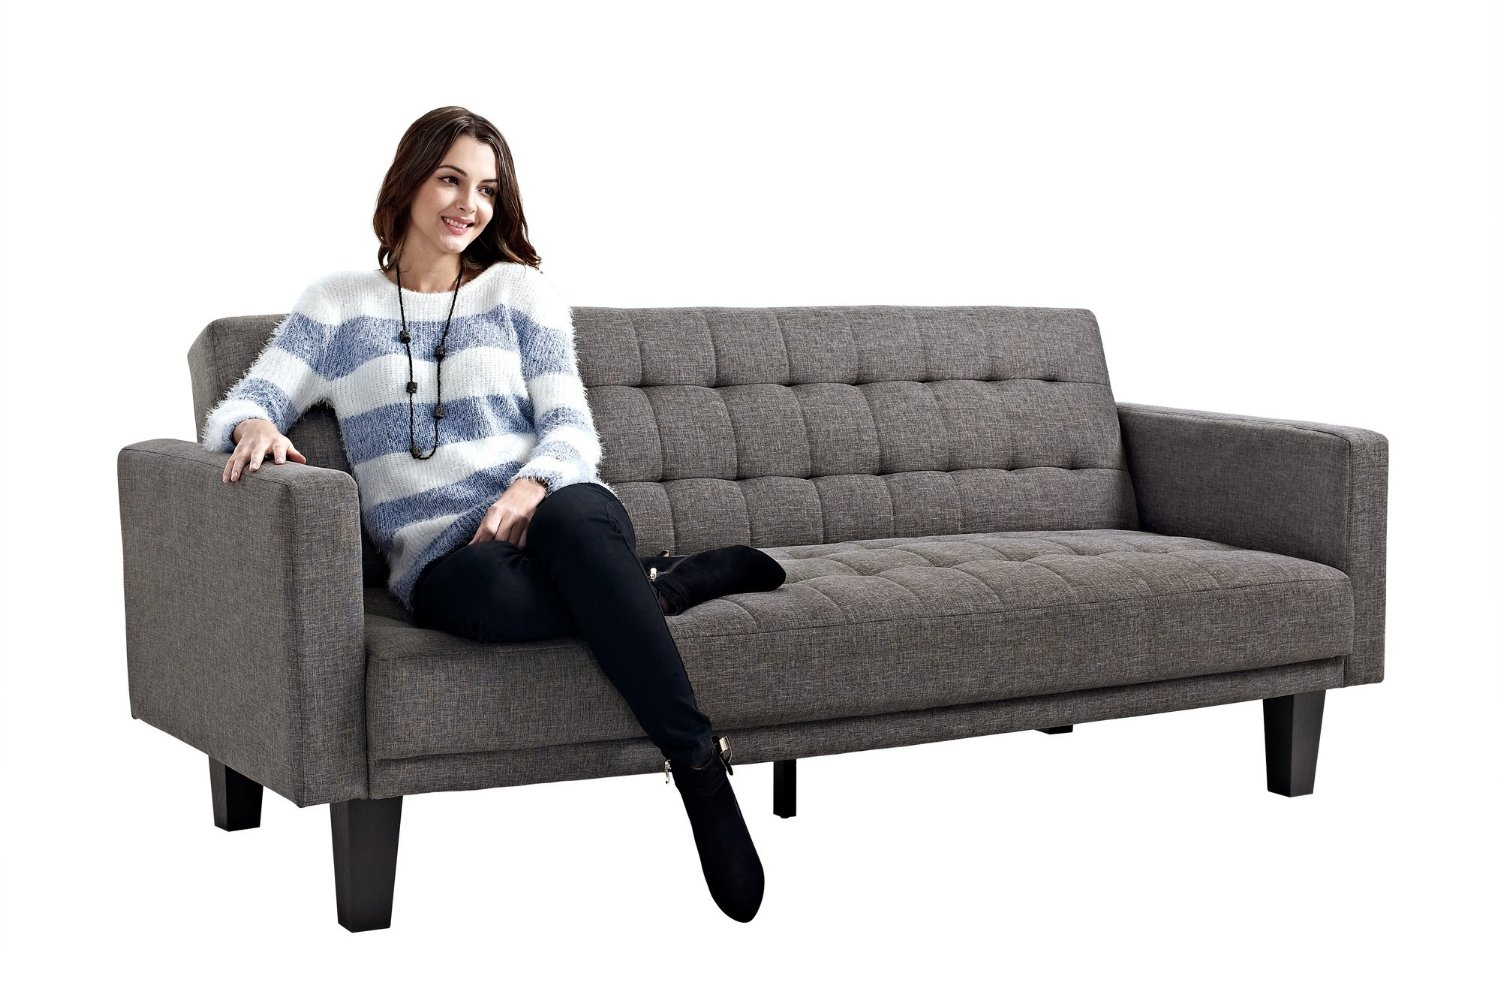 Top 10 Best Sleeper Sofa Reviews Get The Perfect One 2019